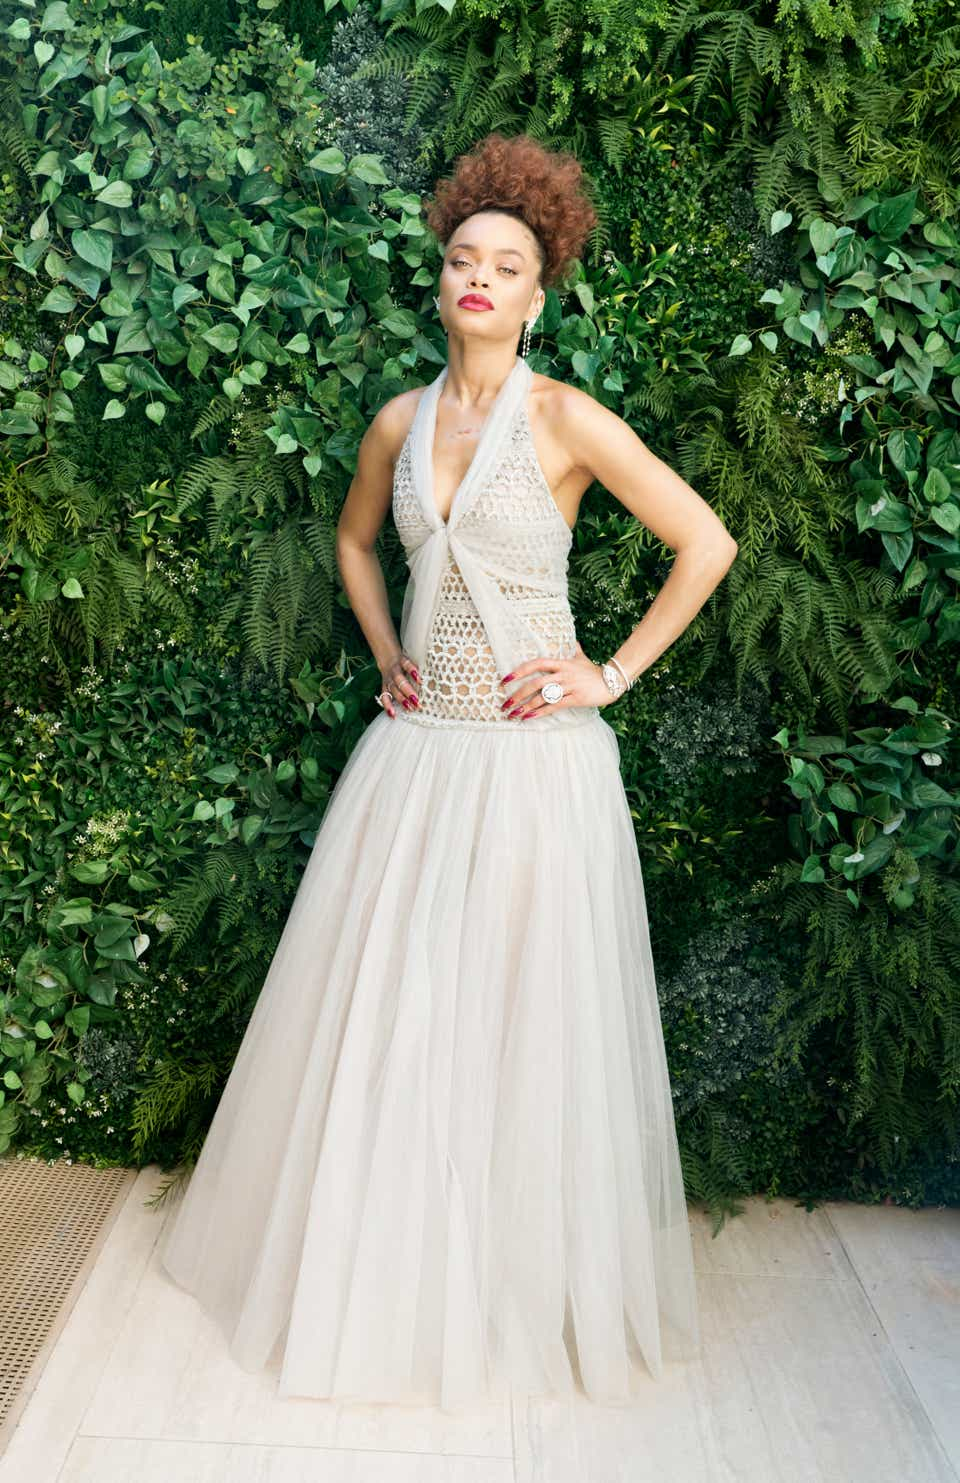 Andra Day at the Golden Globes wearing Chanel.